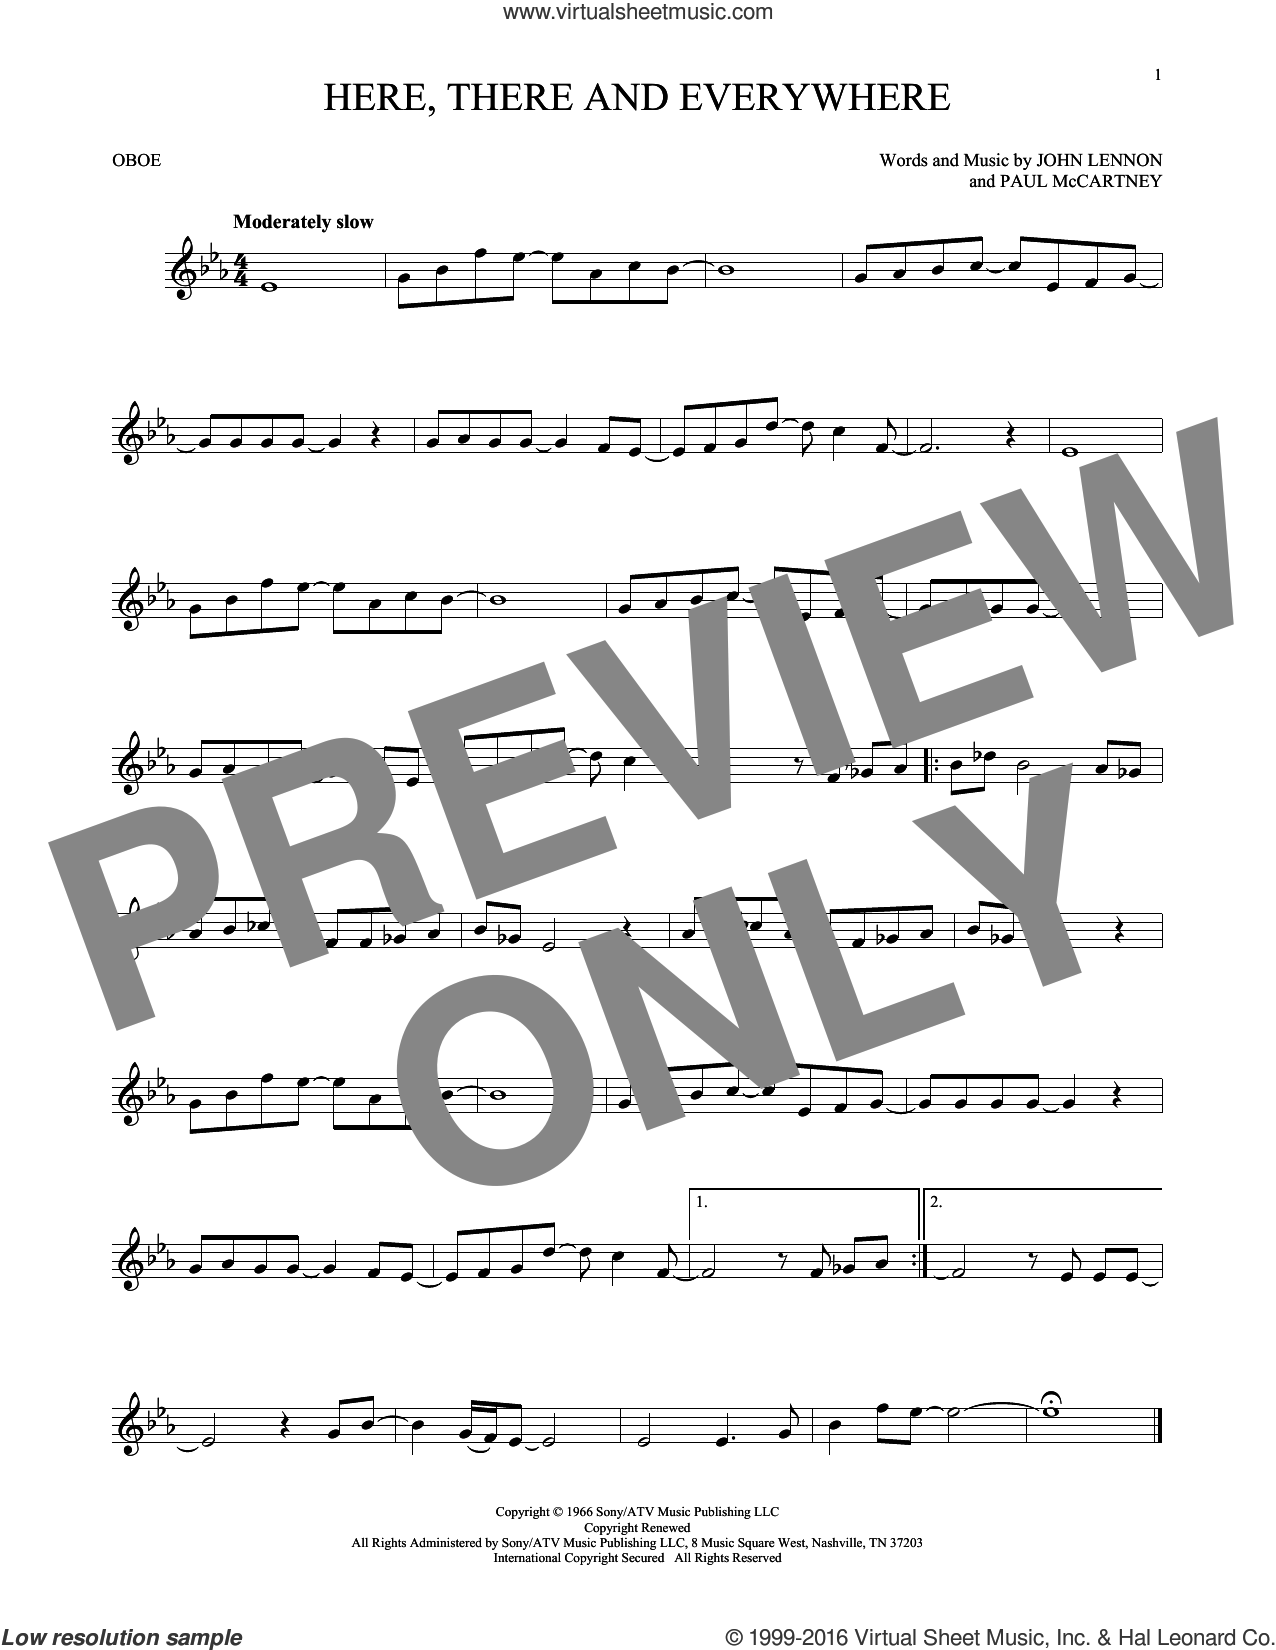 Here, There And Everywhere sheet music for oboe solo by The Beatles, George Benson, John Lennon and Paul McCartney, intermediate skill level